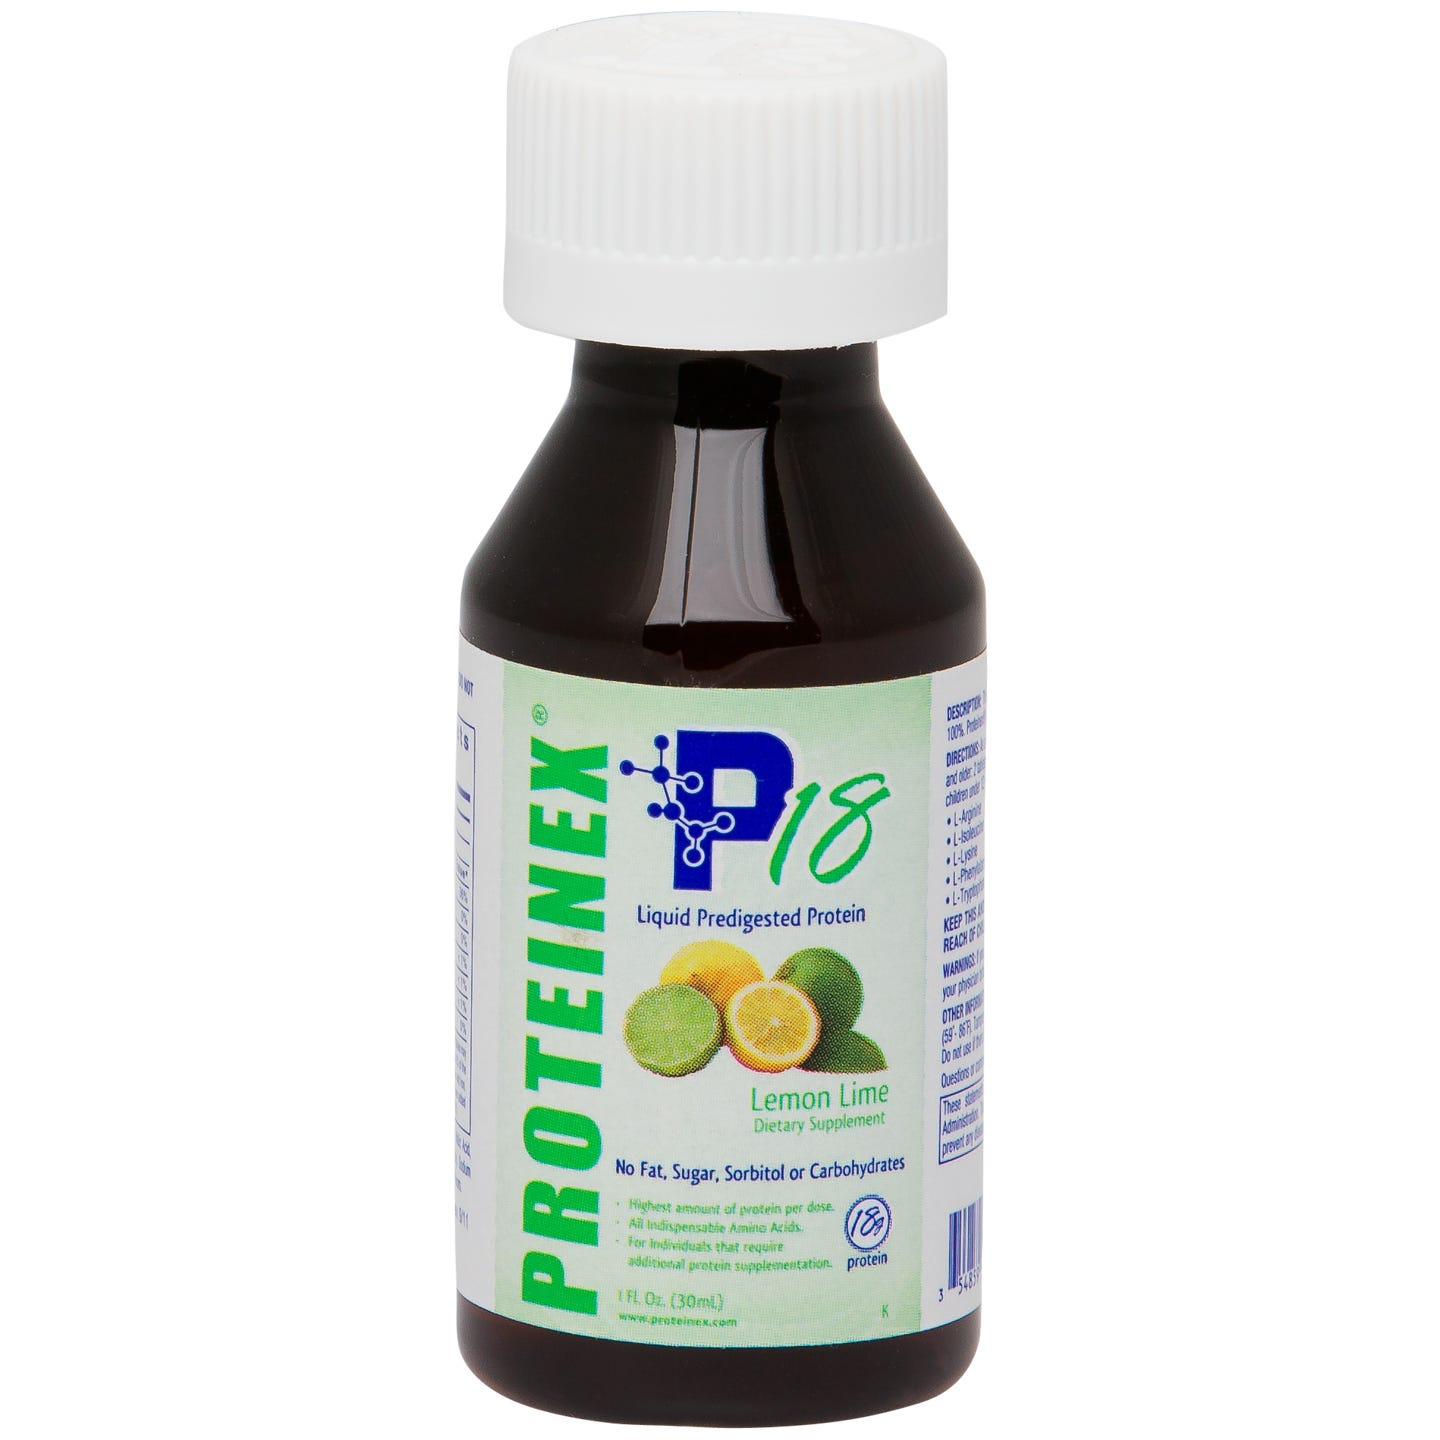 Proteinex-18 Liquid Protein 1 oz. - Lemon Lime